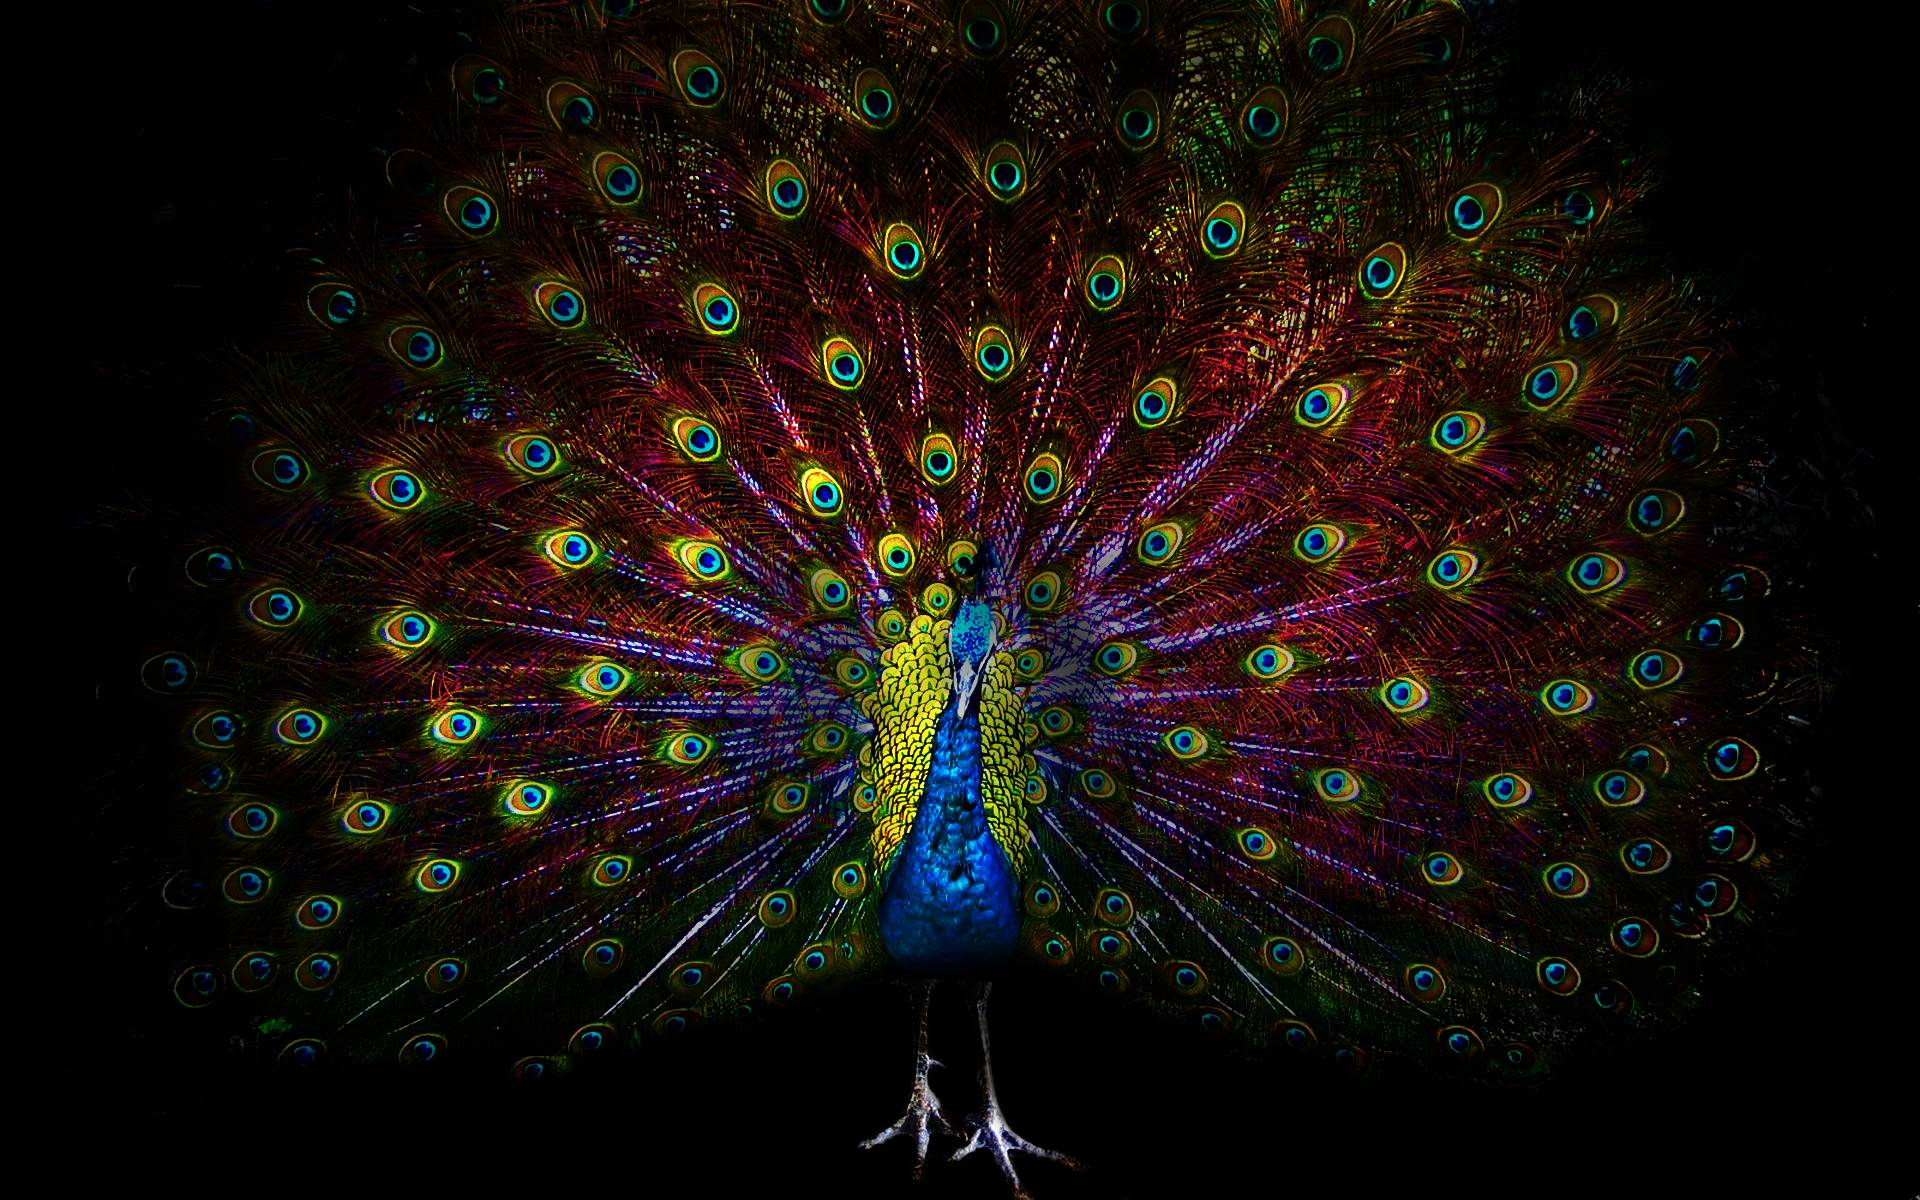 peacock background hd